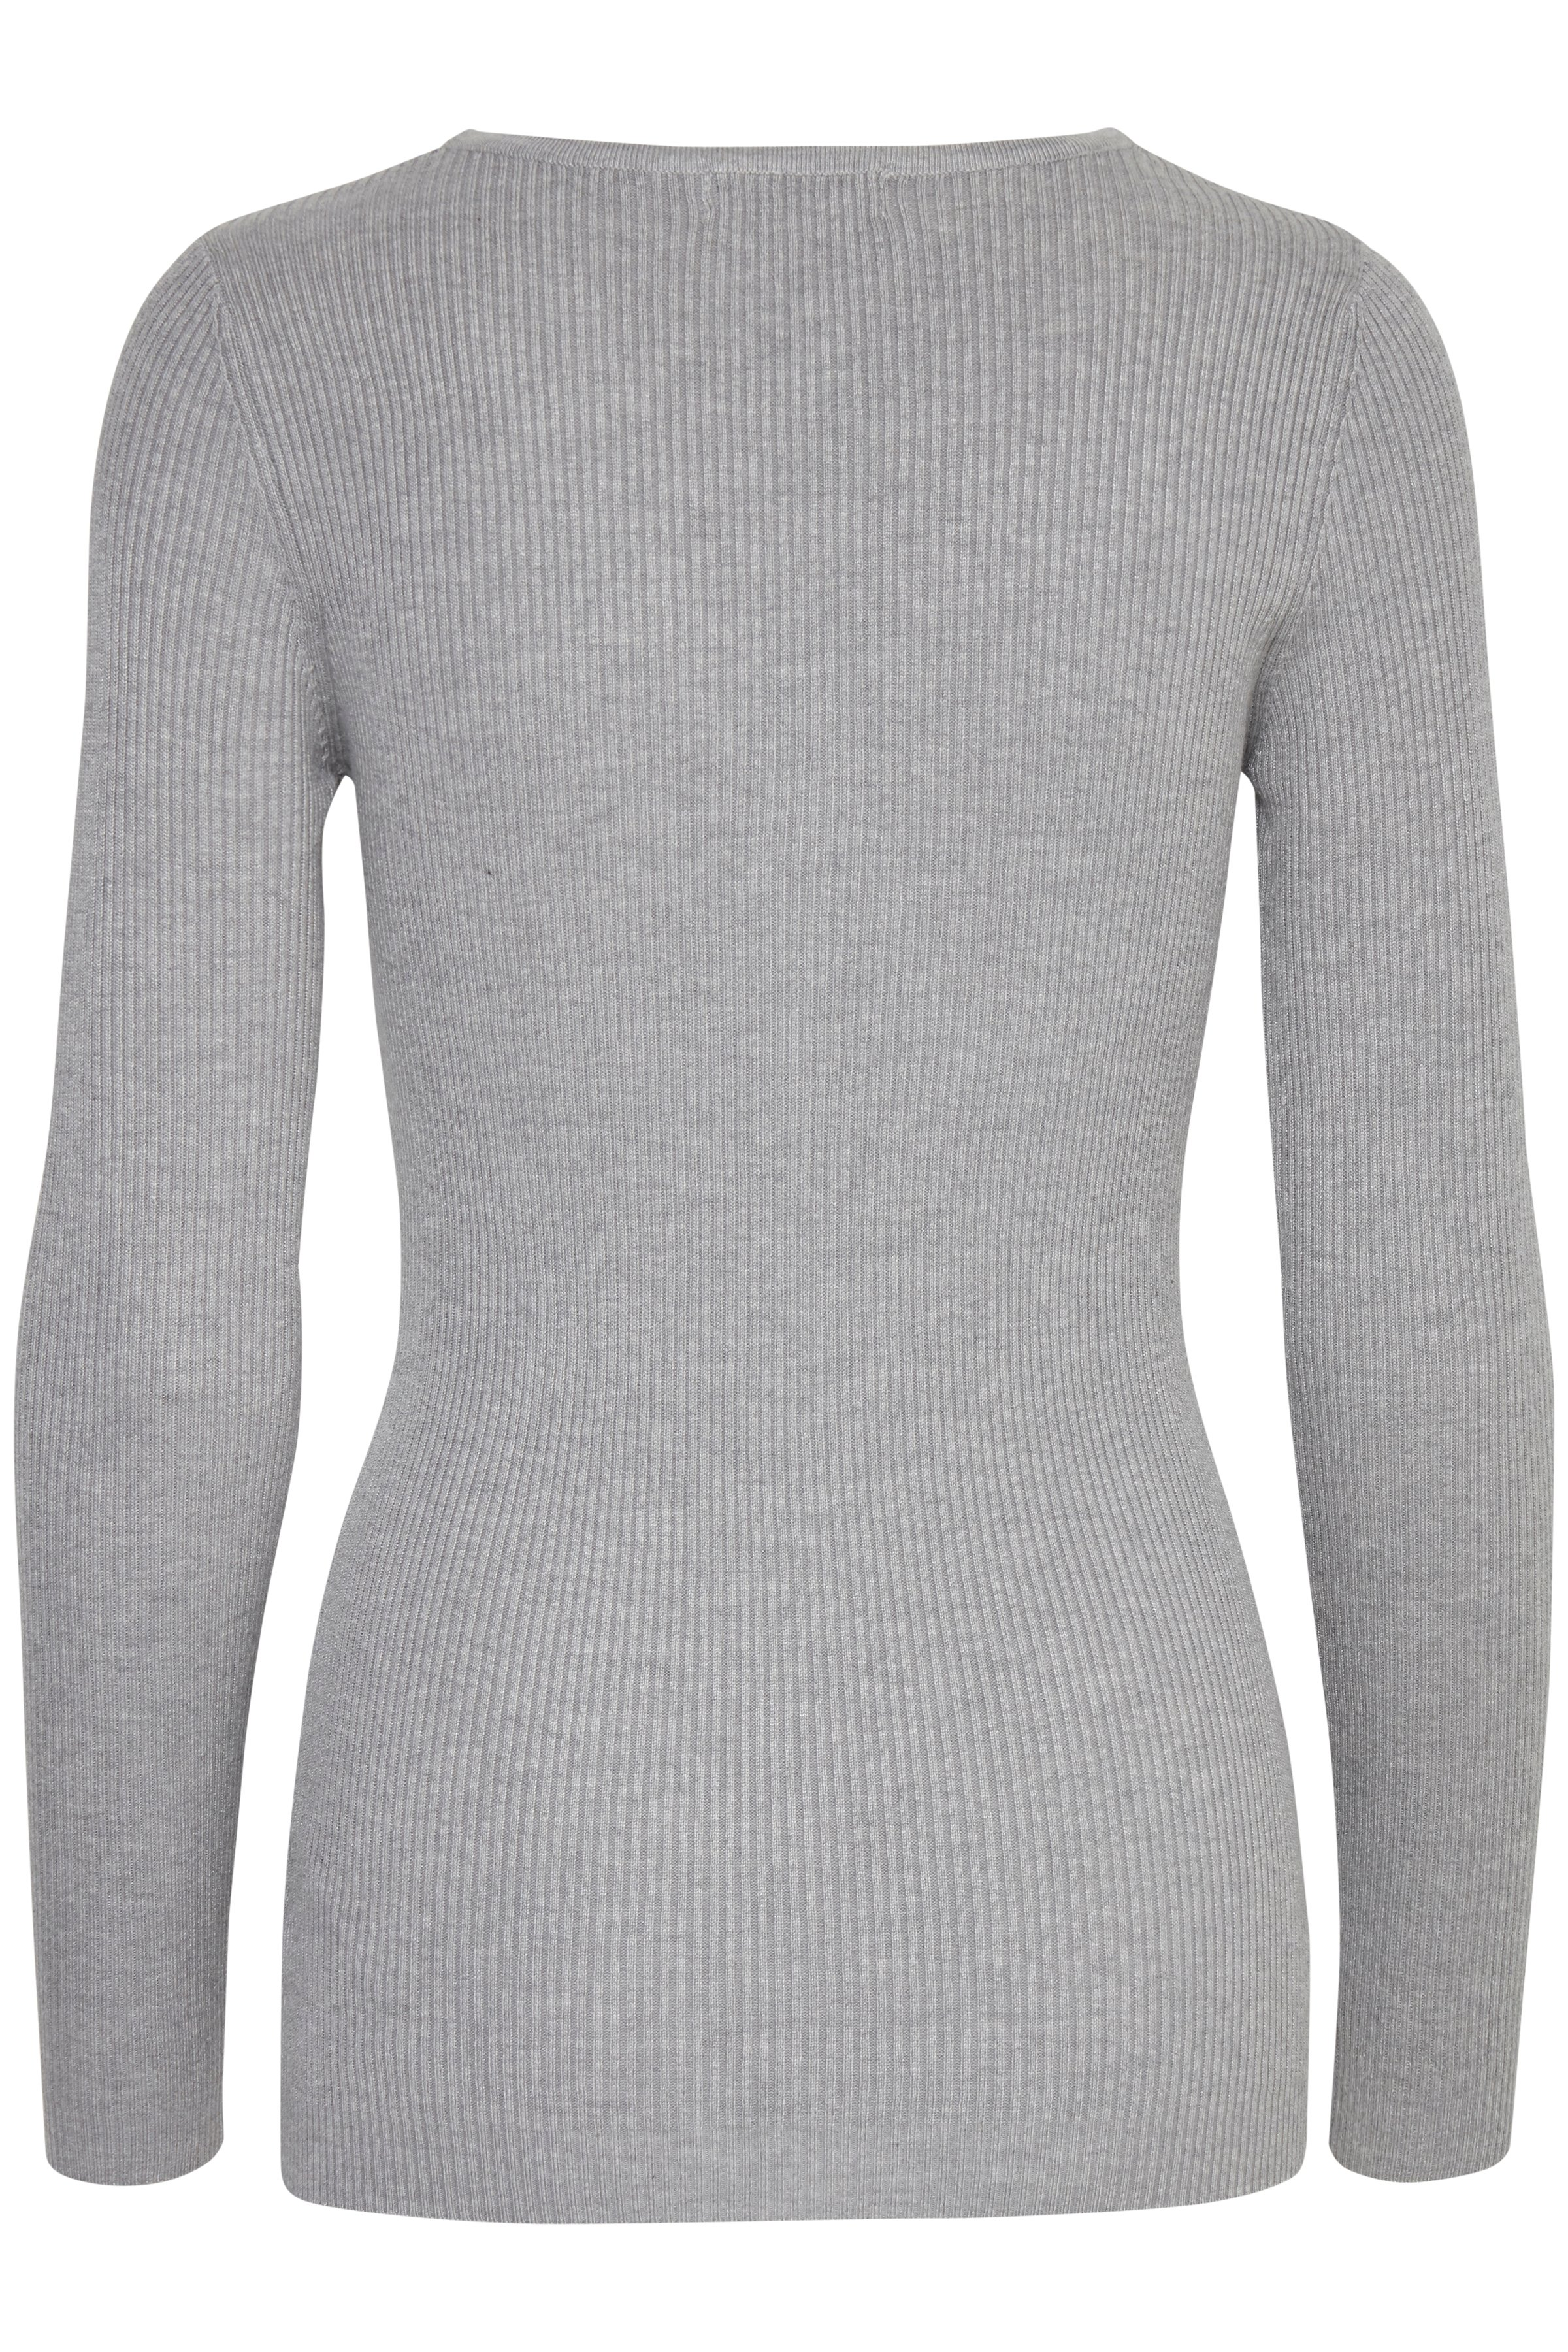 Light grey melange Strikpullover – Køb Light grey melange Strikpullover fra str. XS-XXL her